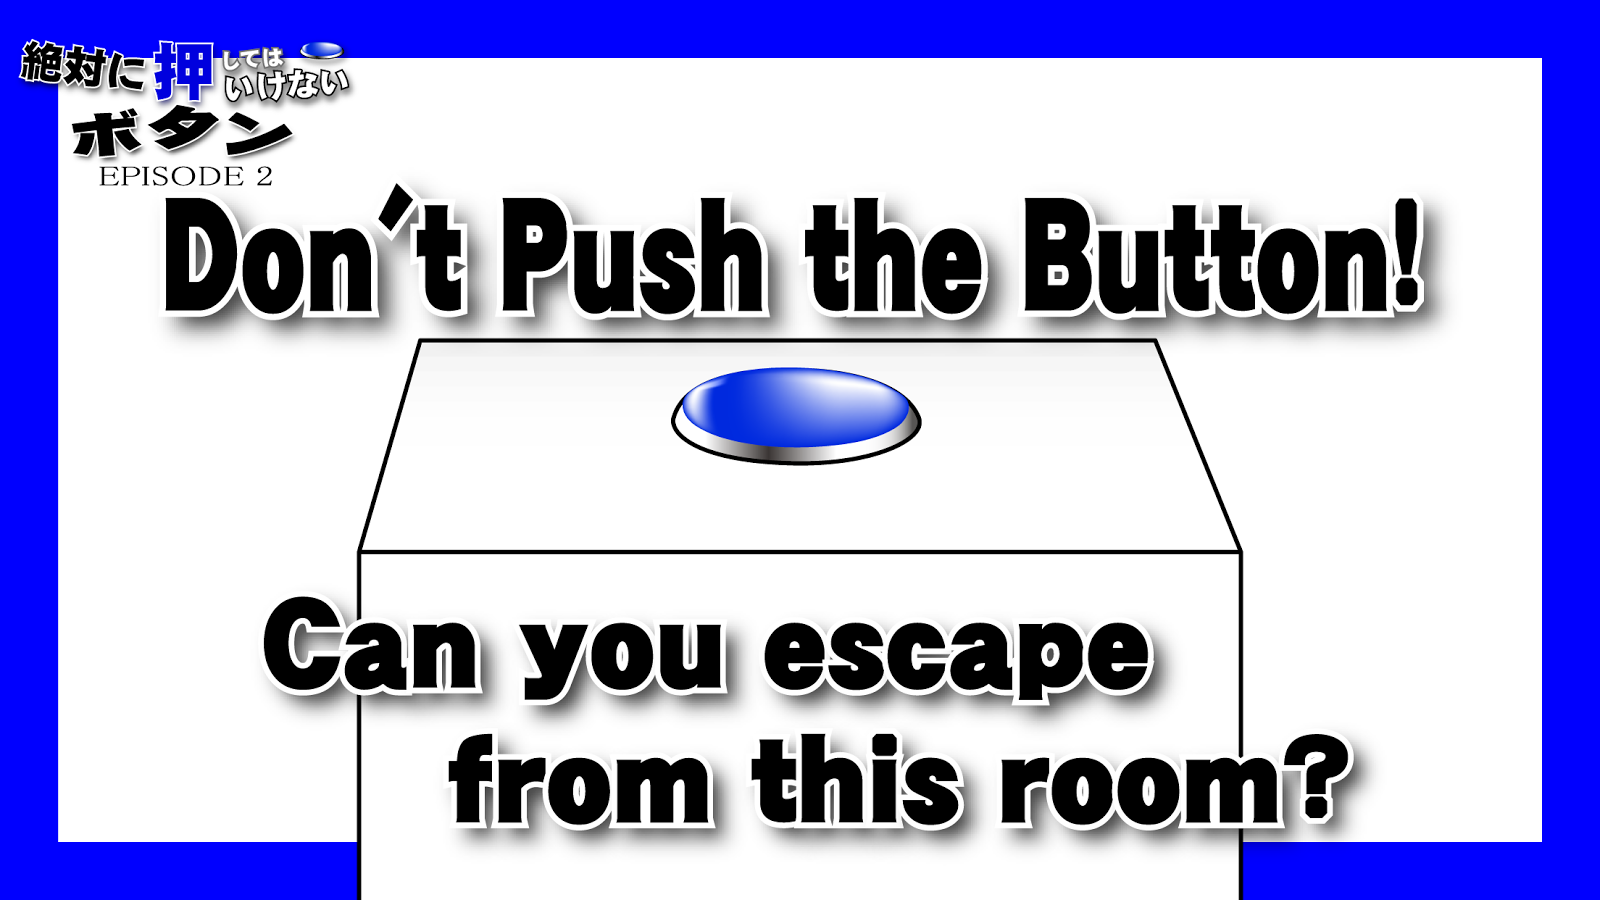 Don't Push the Button2 -room escape game-- screenshot